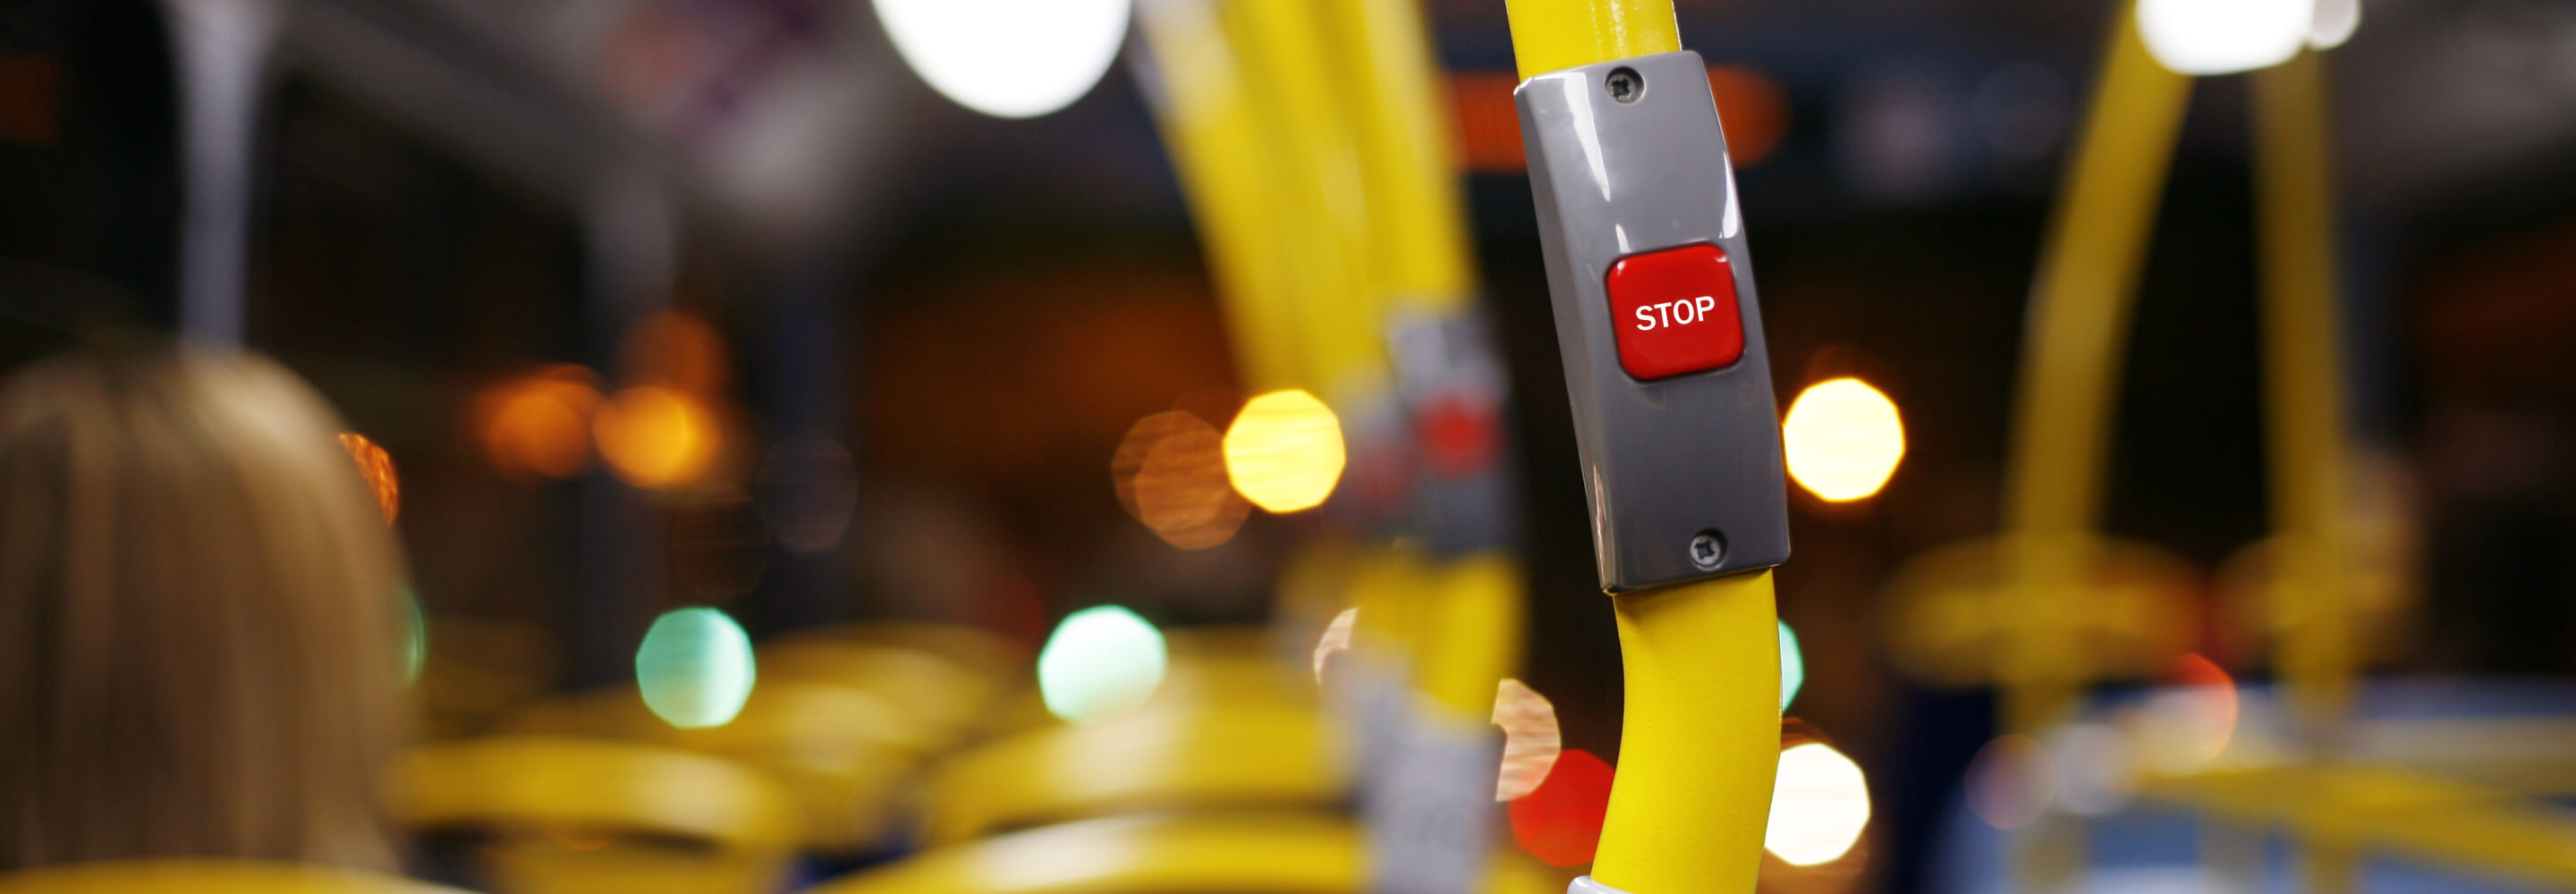 Ralli Solicitors: Public Transport and Taxi Accident Claims Banner